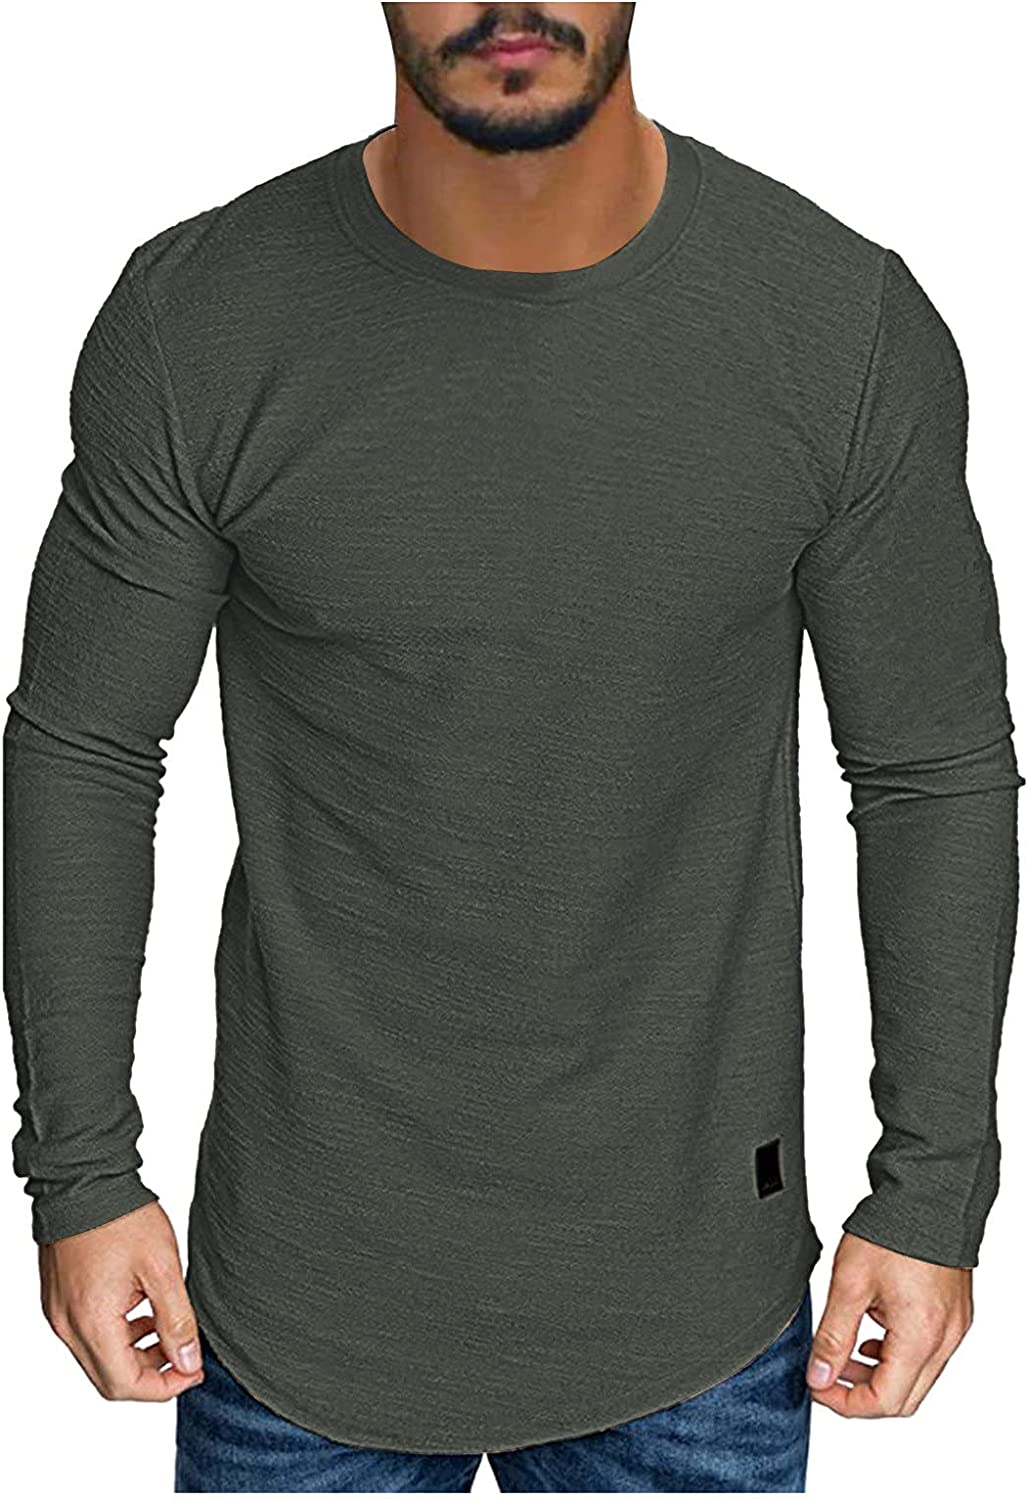 XXBR Long Sleeve Crewneck T-shirts for Mens, 2021 Fall Elastic Cotton Slim-Fit Solid Color Basic Tops Warm Undershirt